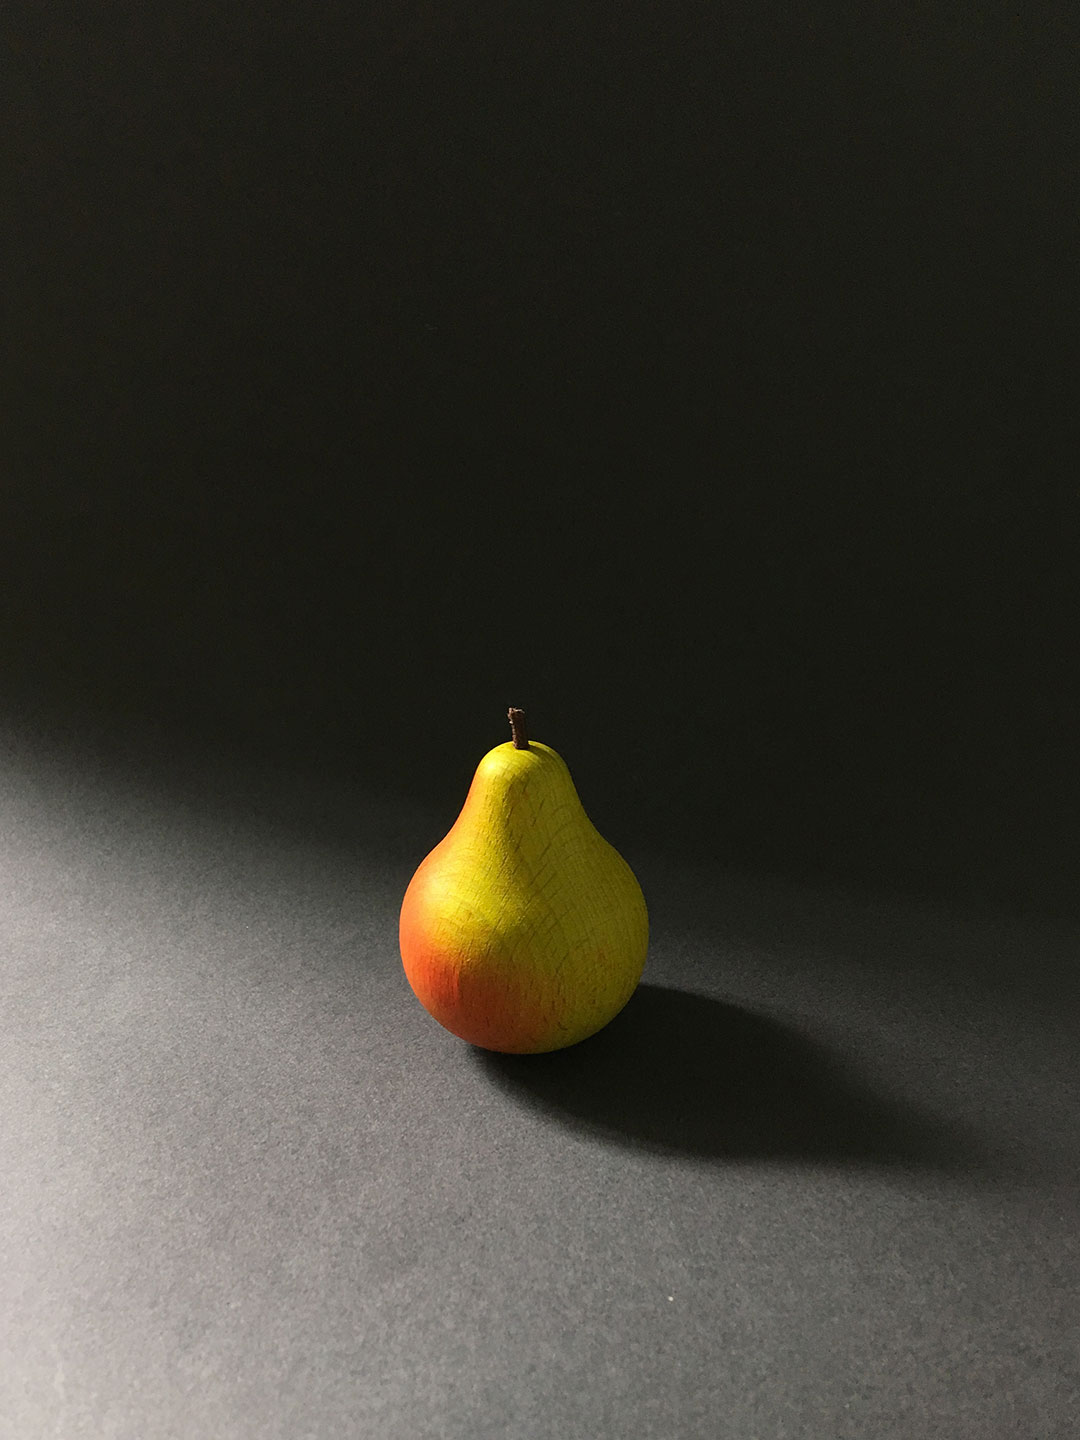 Terrific Wooden Fruit Red Pear Download Free Architecture Designs Lectubocepmadebymaigaardcom